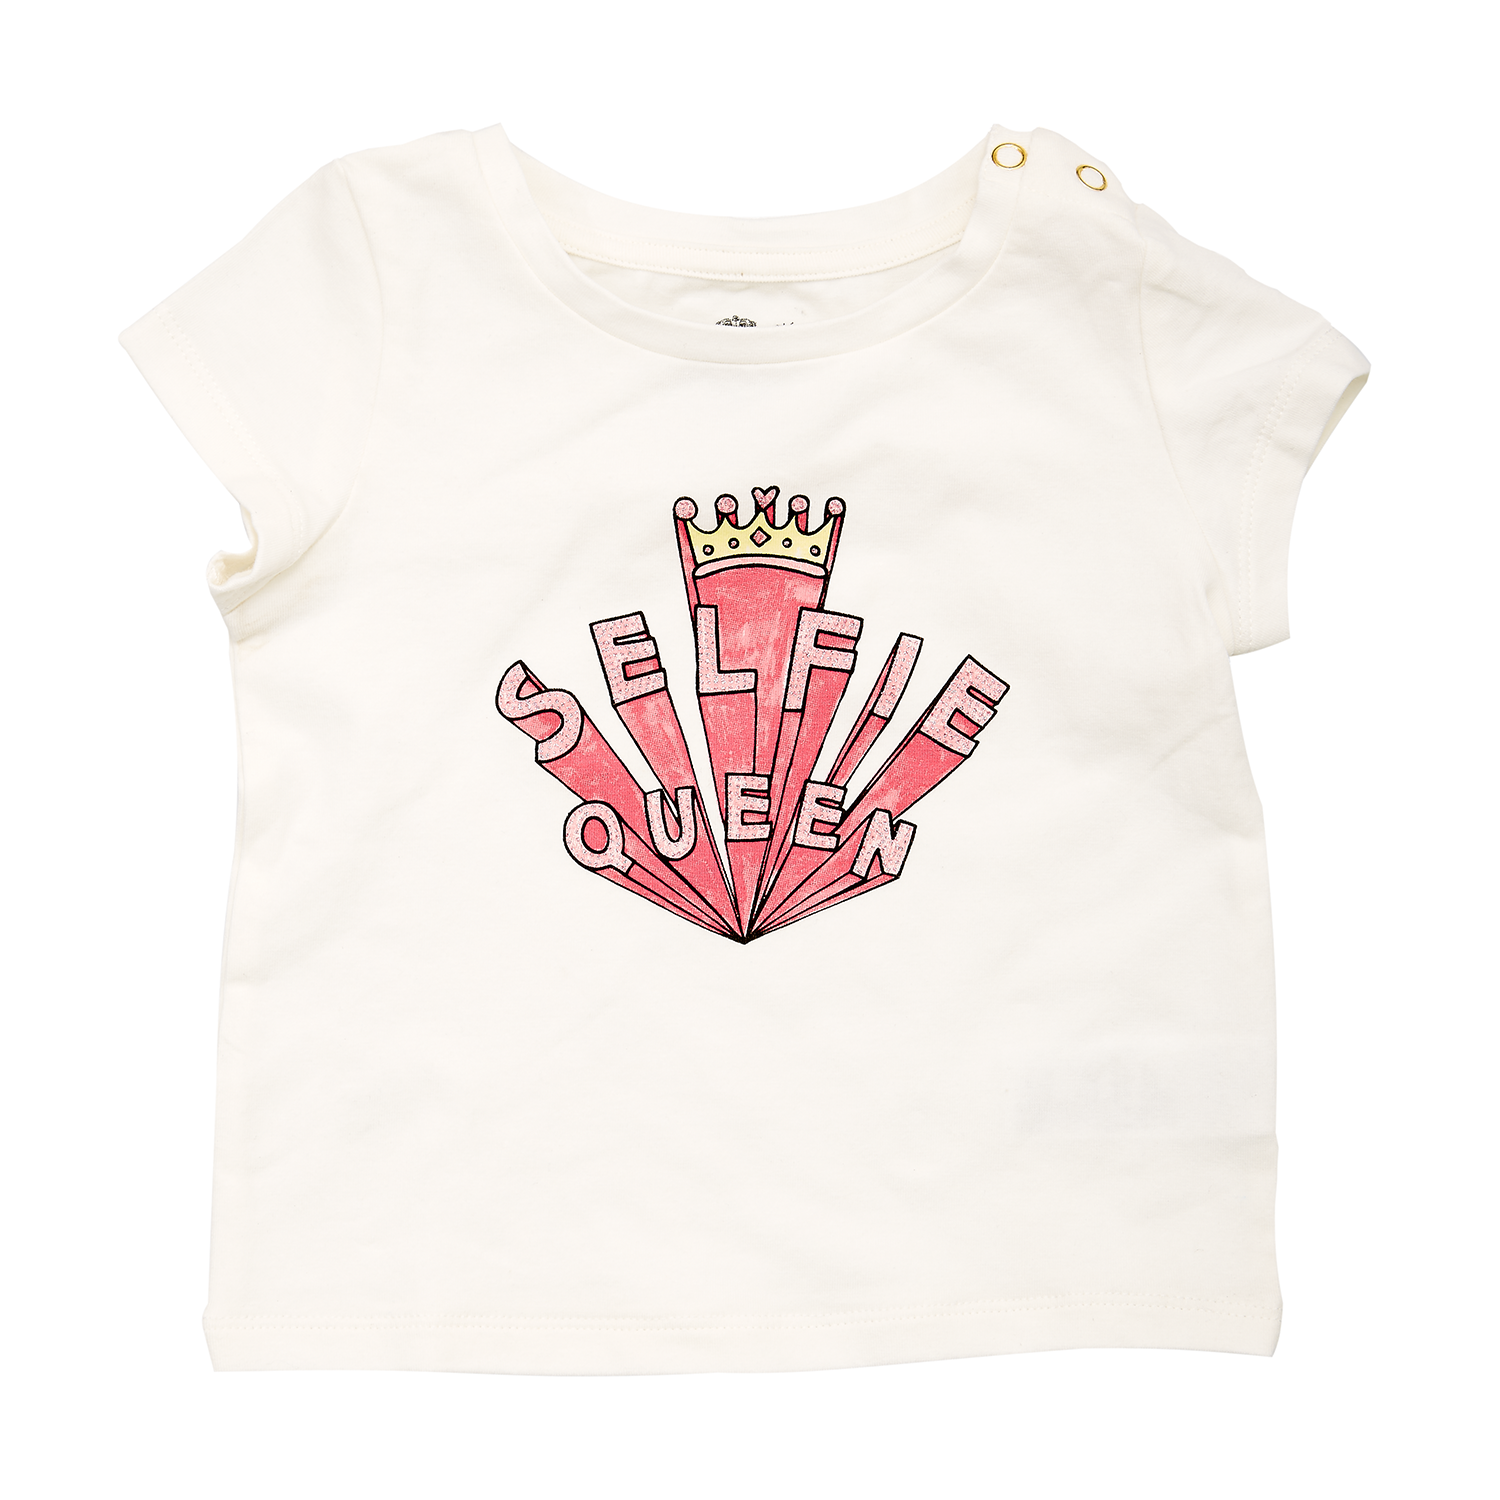 JUICY COUTURE KIDS – Βρεφική μπλούζα JUICY COUTURE λευκή